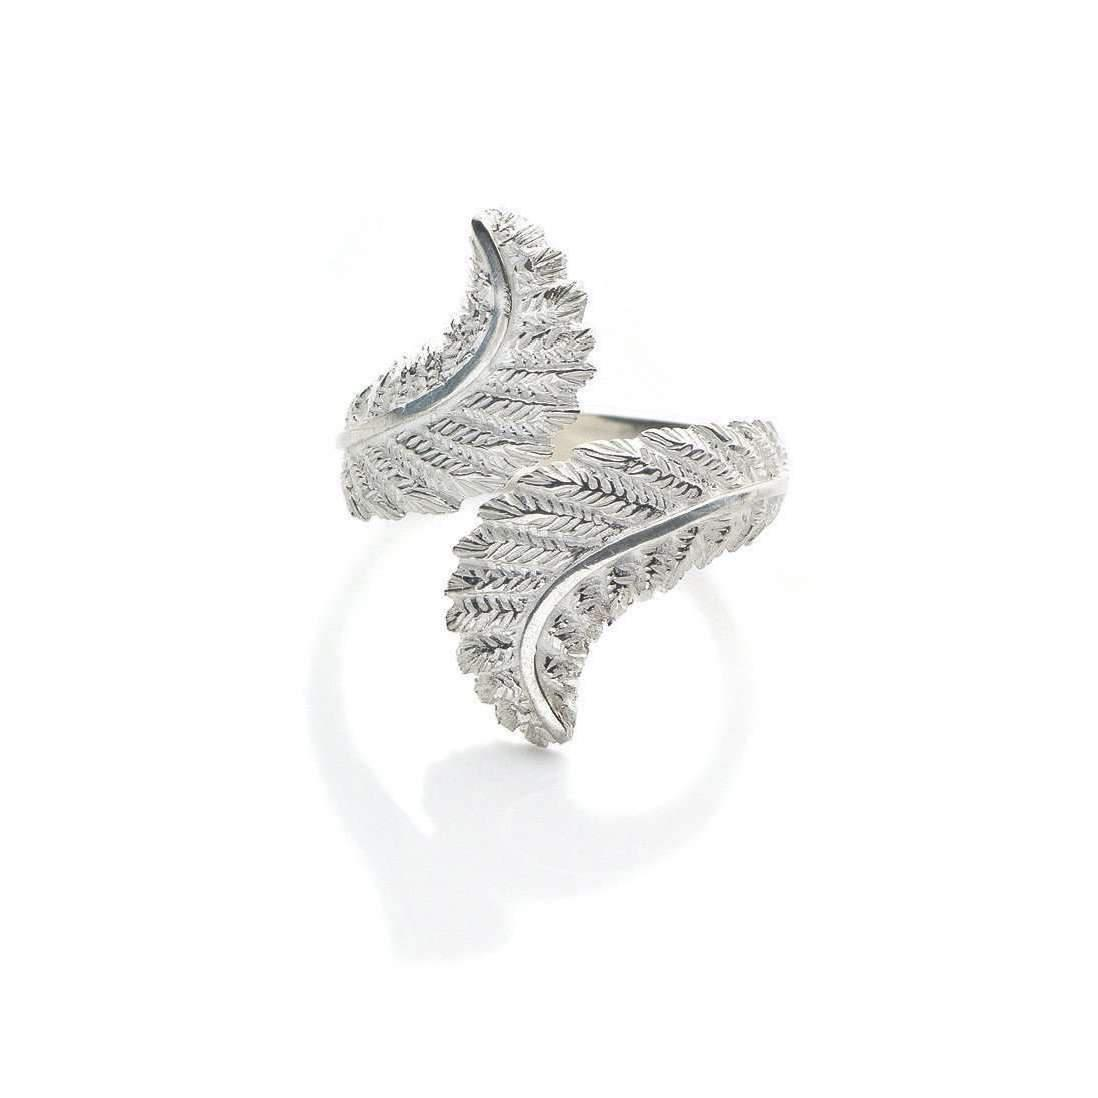 Patience Jewellery Fern Ring VM - UK L - US 5 1/2 - EU 51 3/4 dj0vF3